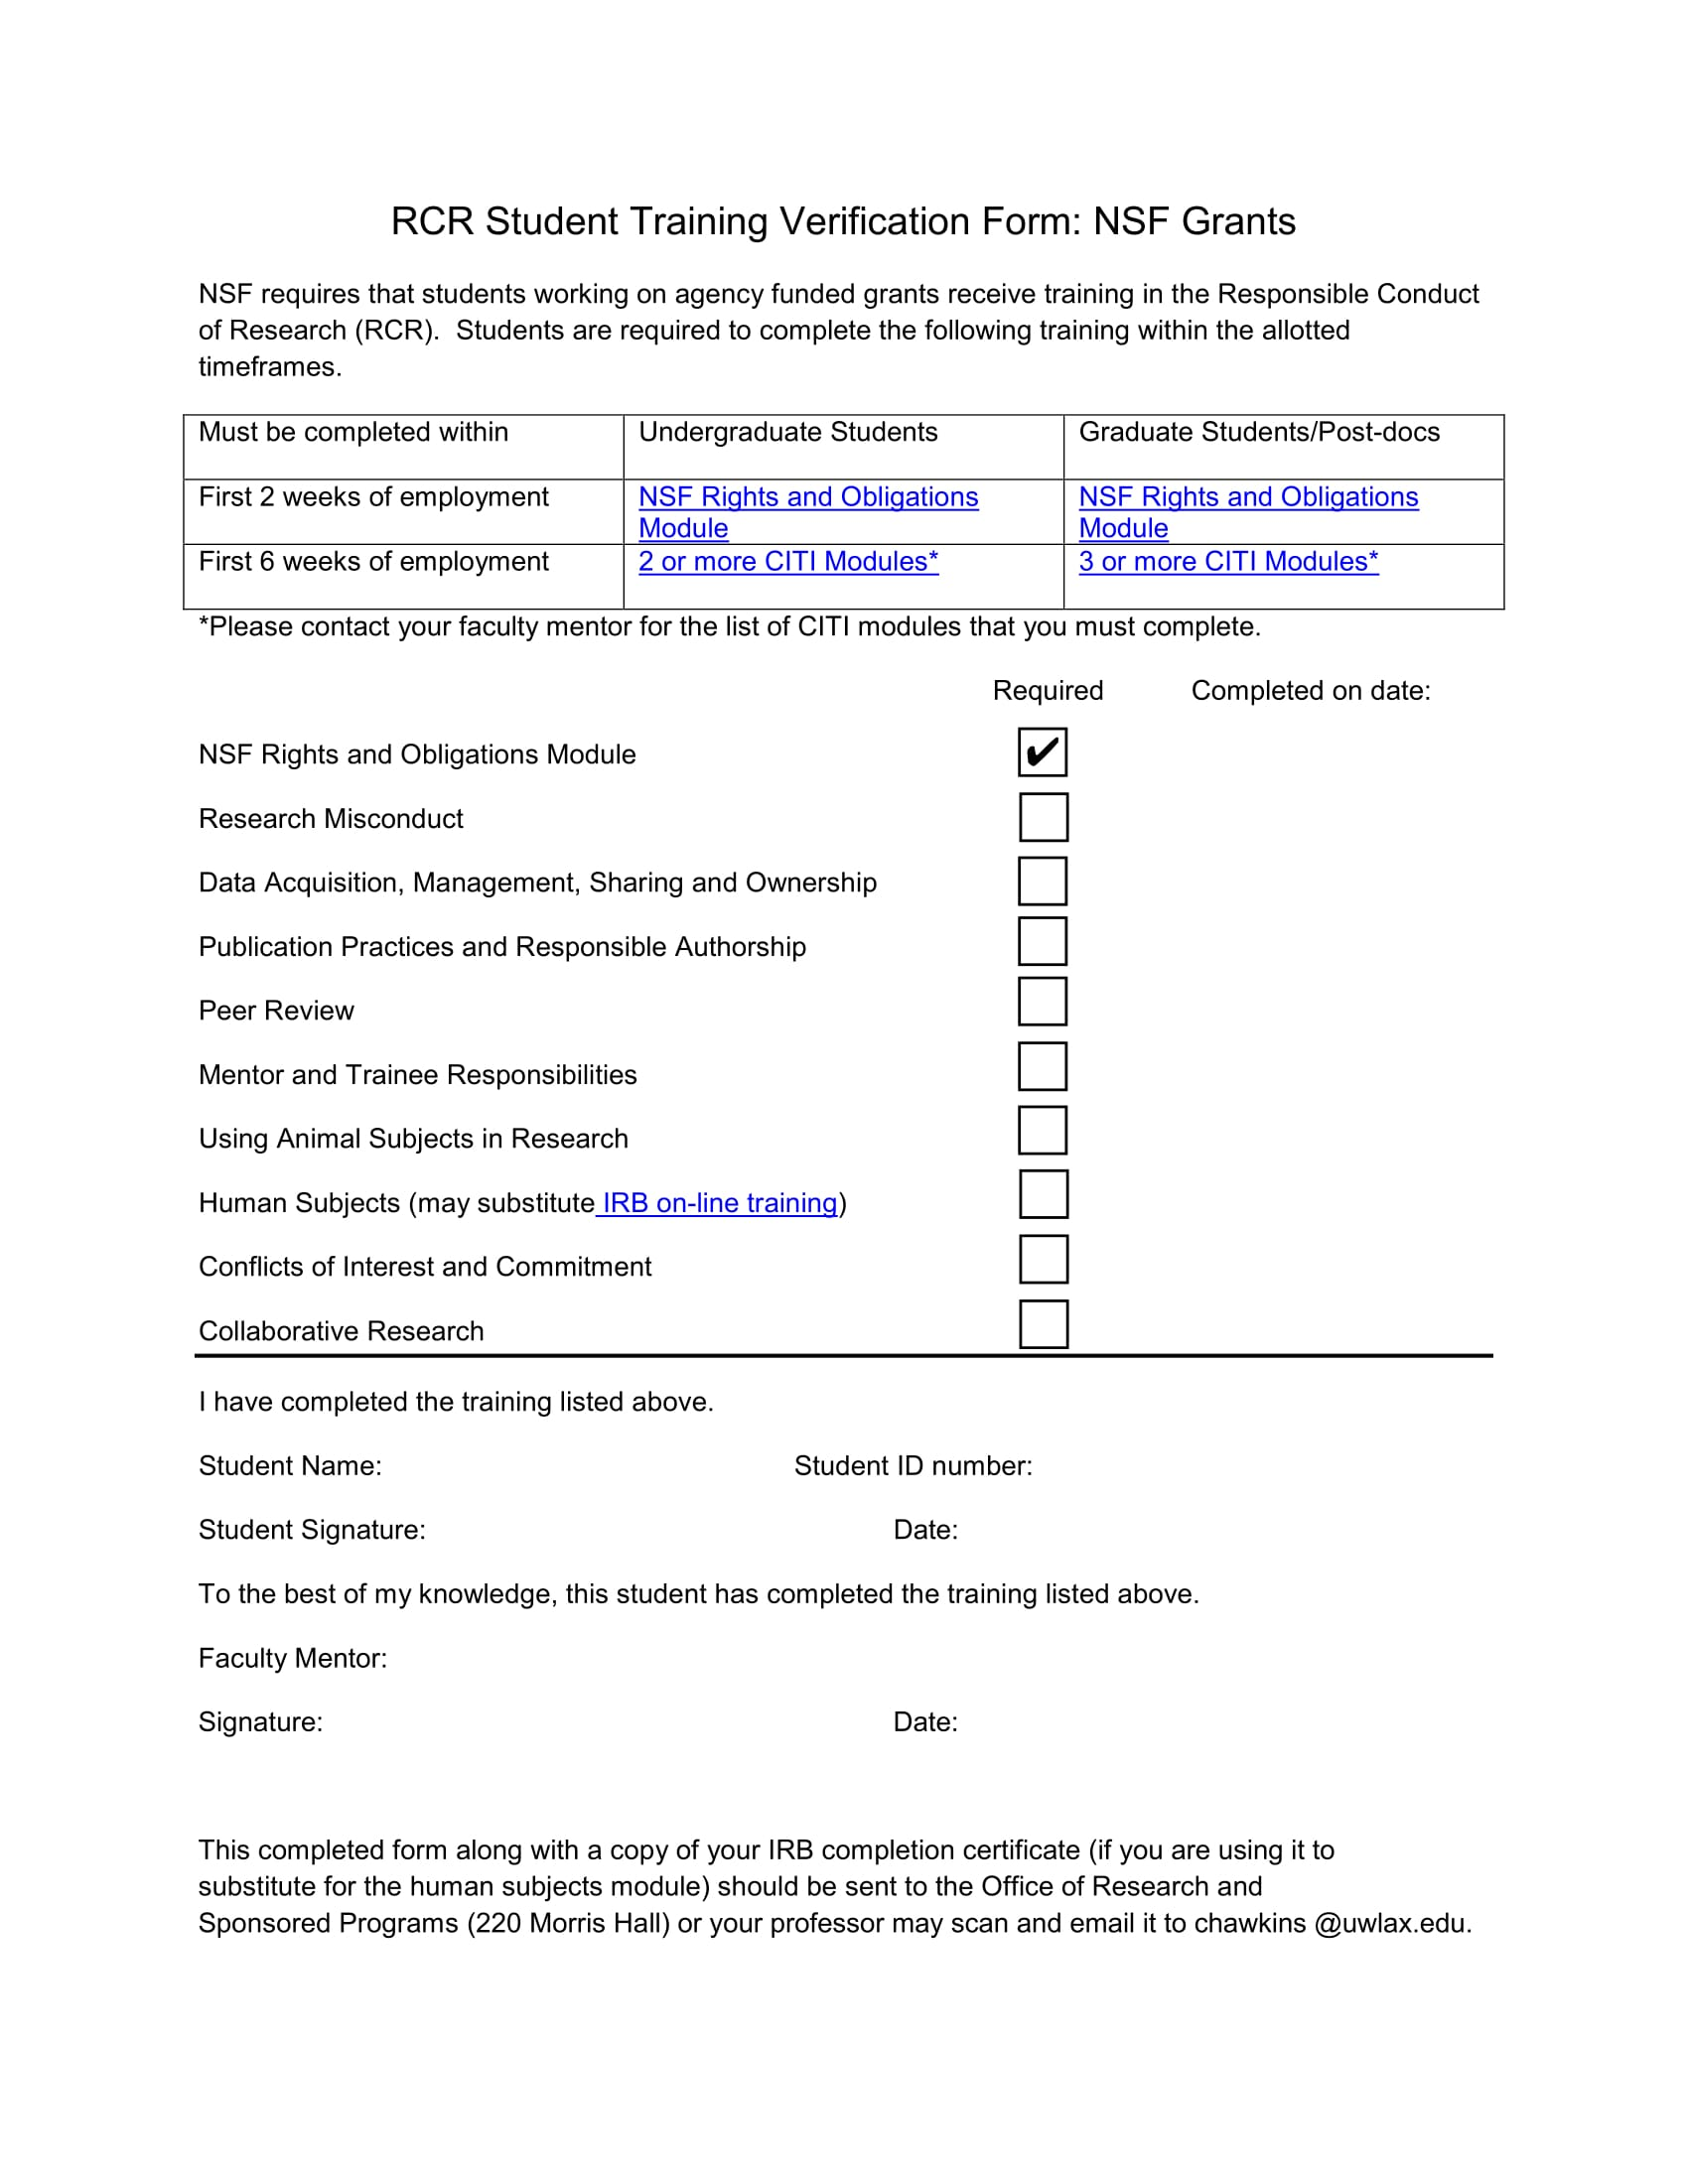 Training Verification Form Samples, Definition, Uses, and